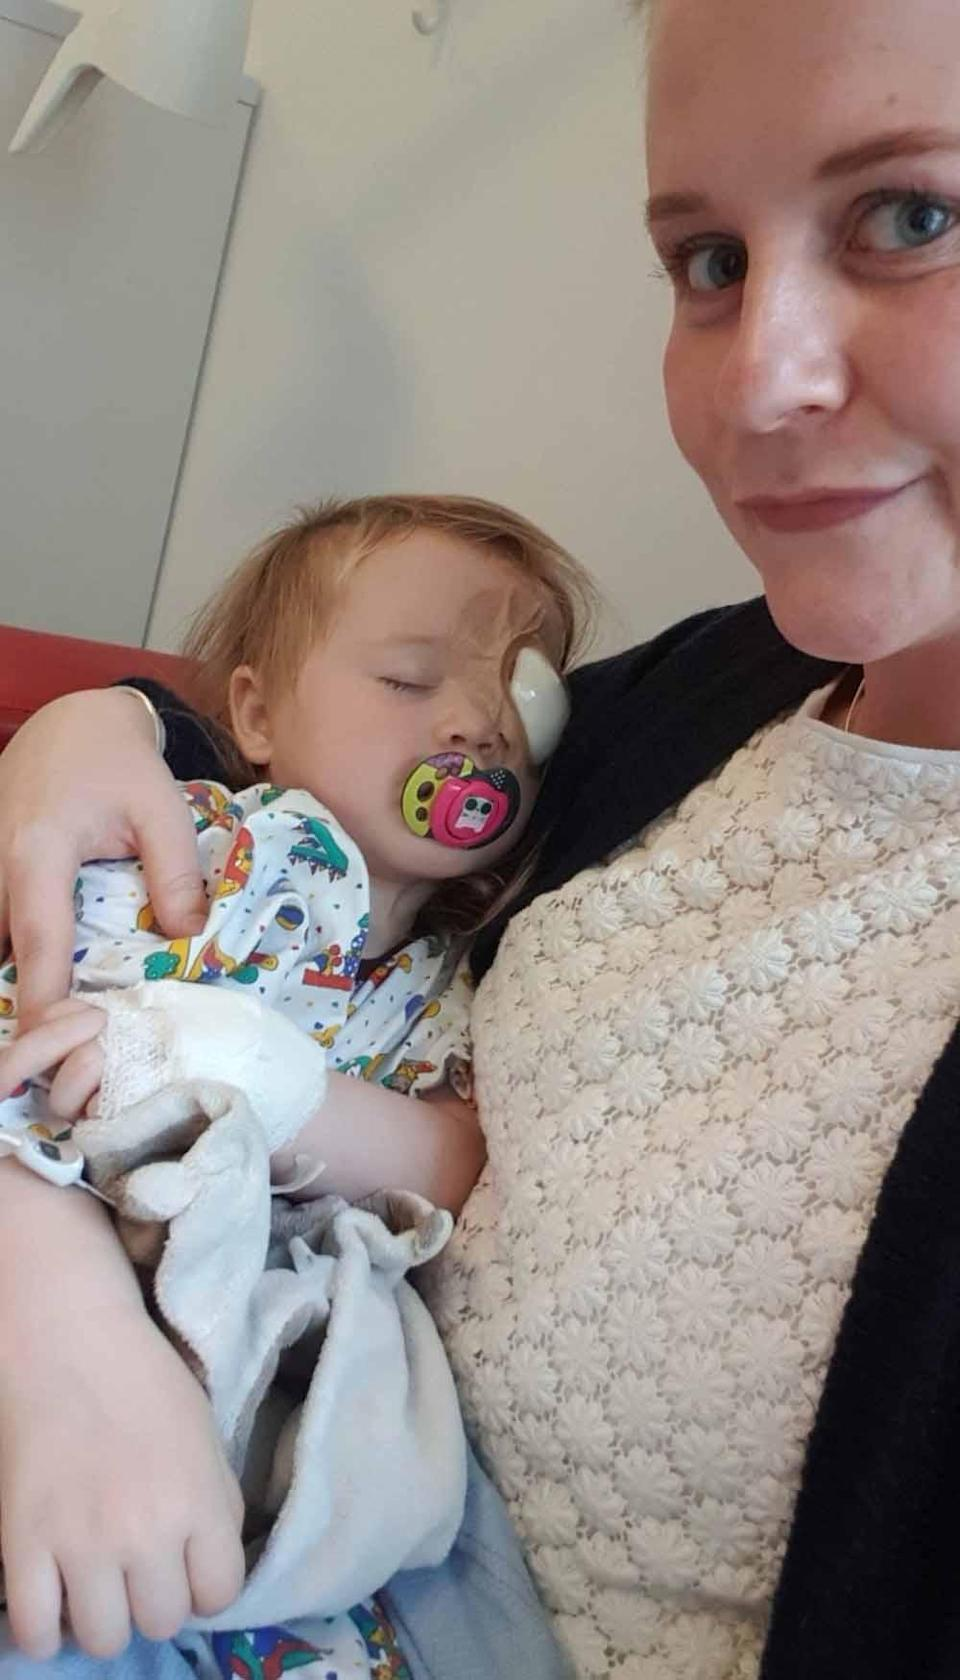 Evie with a radioactive plaque fitted to her eye. PA REAL LIFE COLLECT